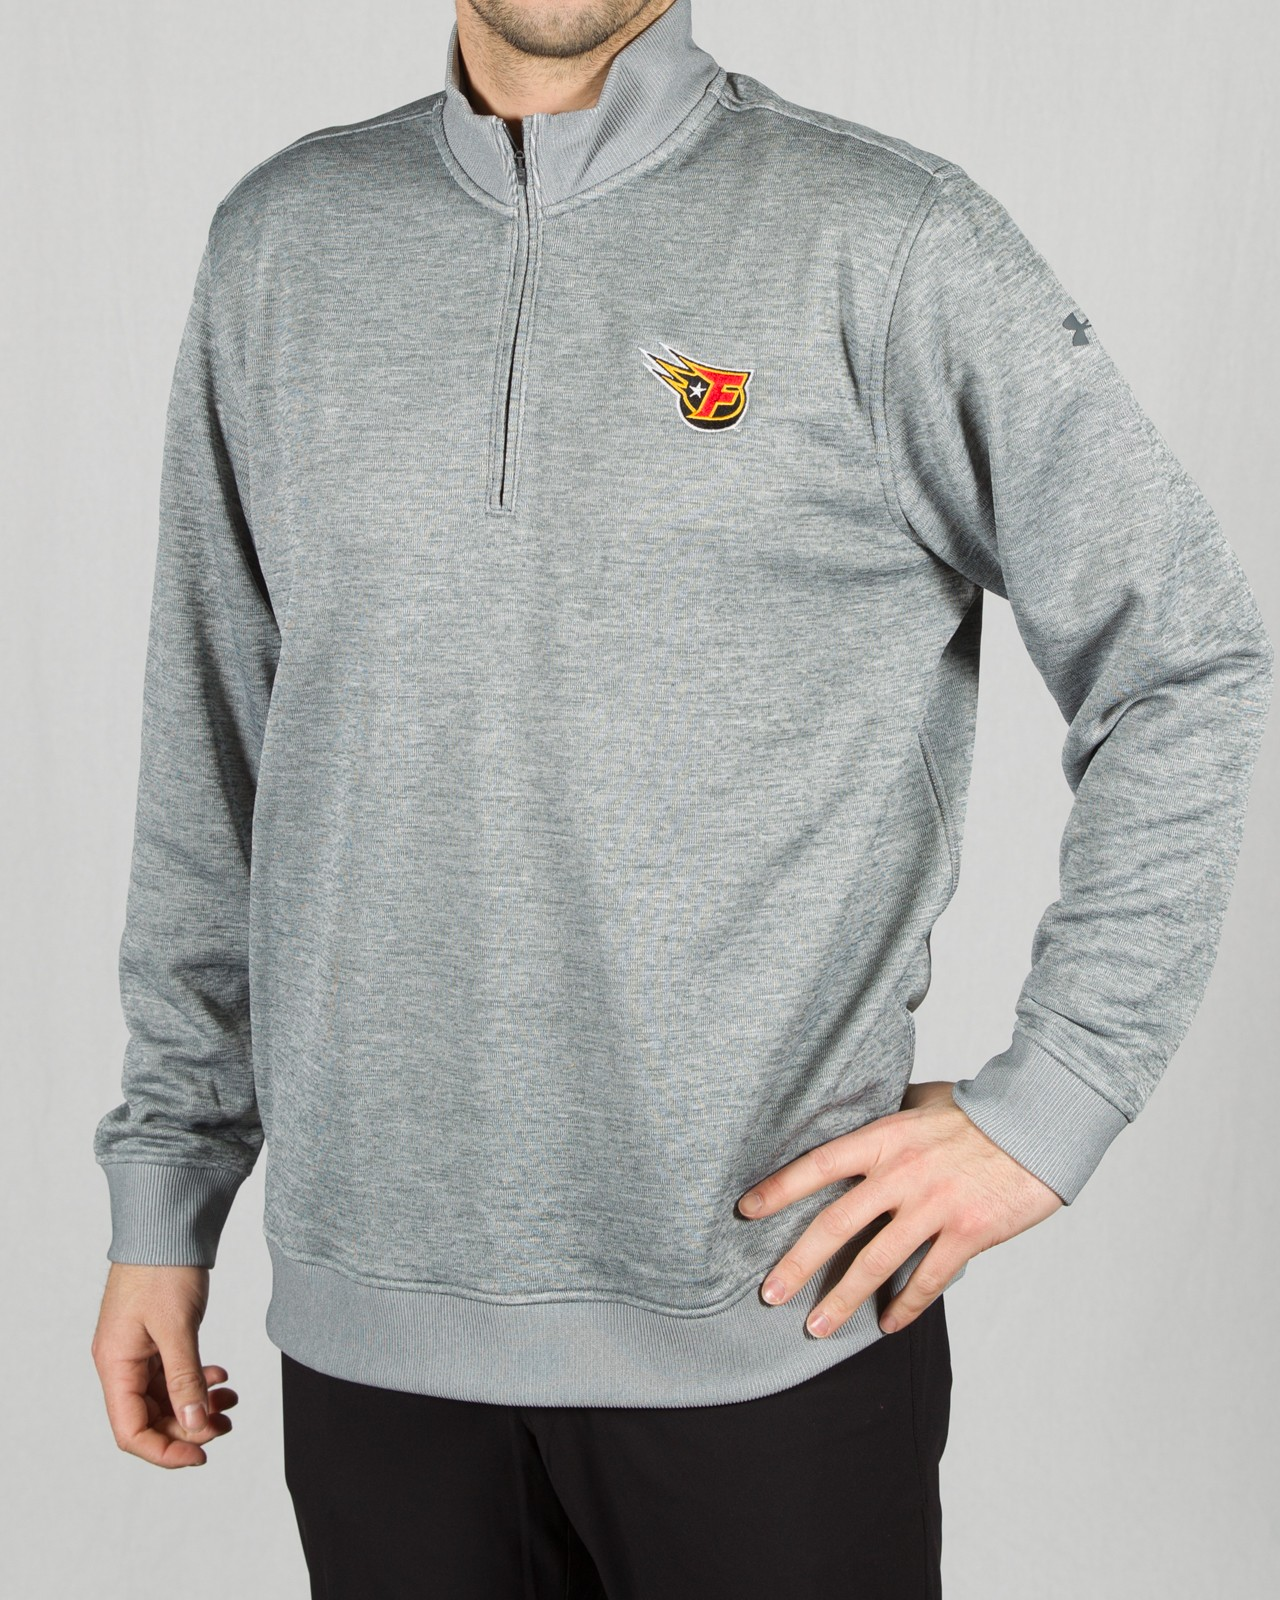 Storm Fleece 1/4 Zip